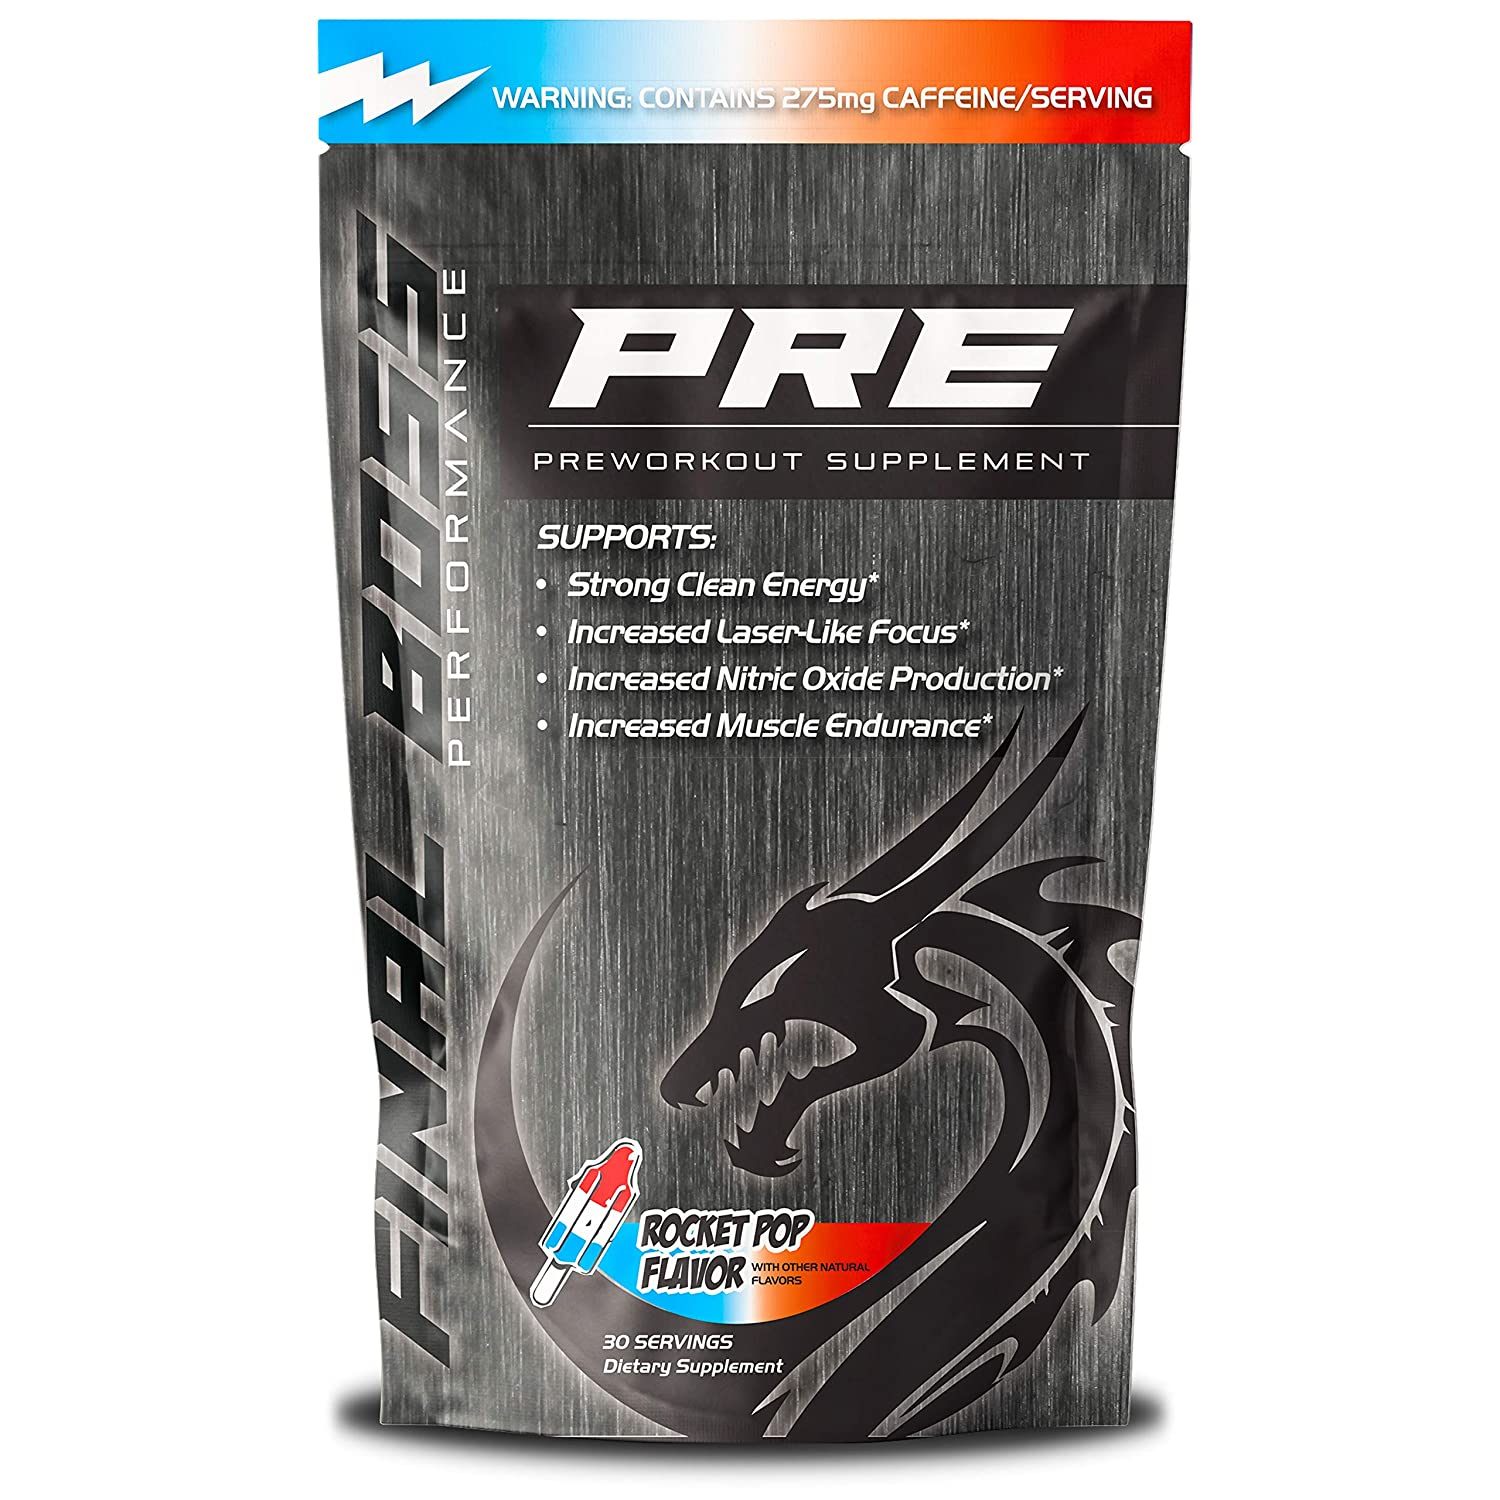 Final Boss PRE-Workout – Extreme Energy, Razor Sharp Focus, Lasting Endurance – Beta Alanine – Rocket Pop Flavor